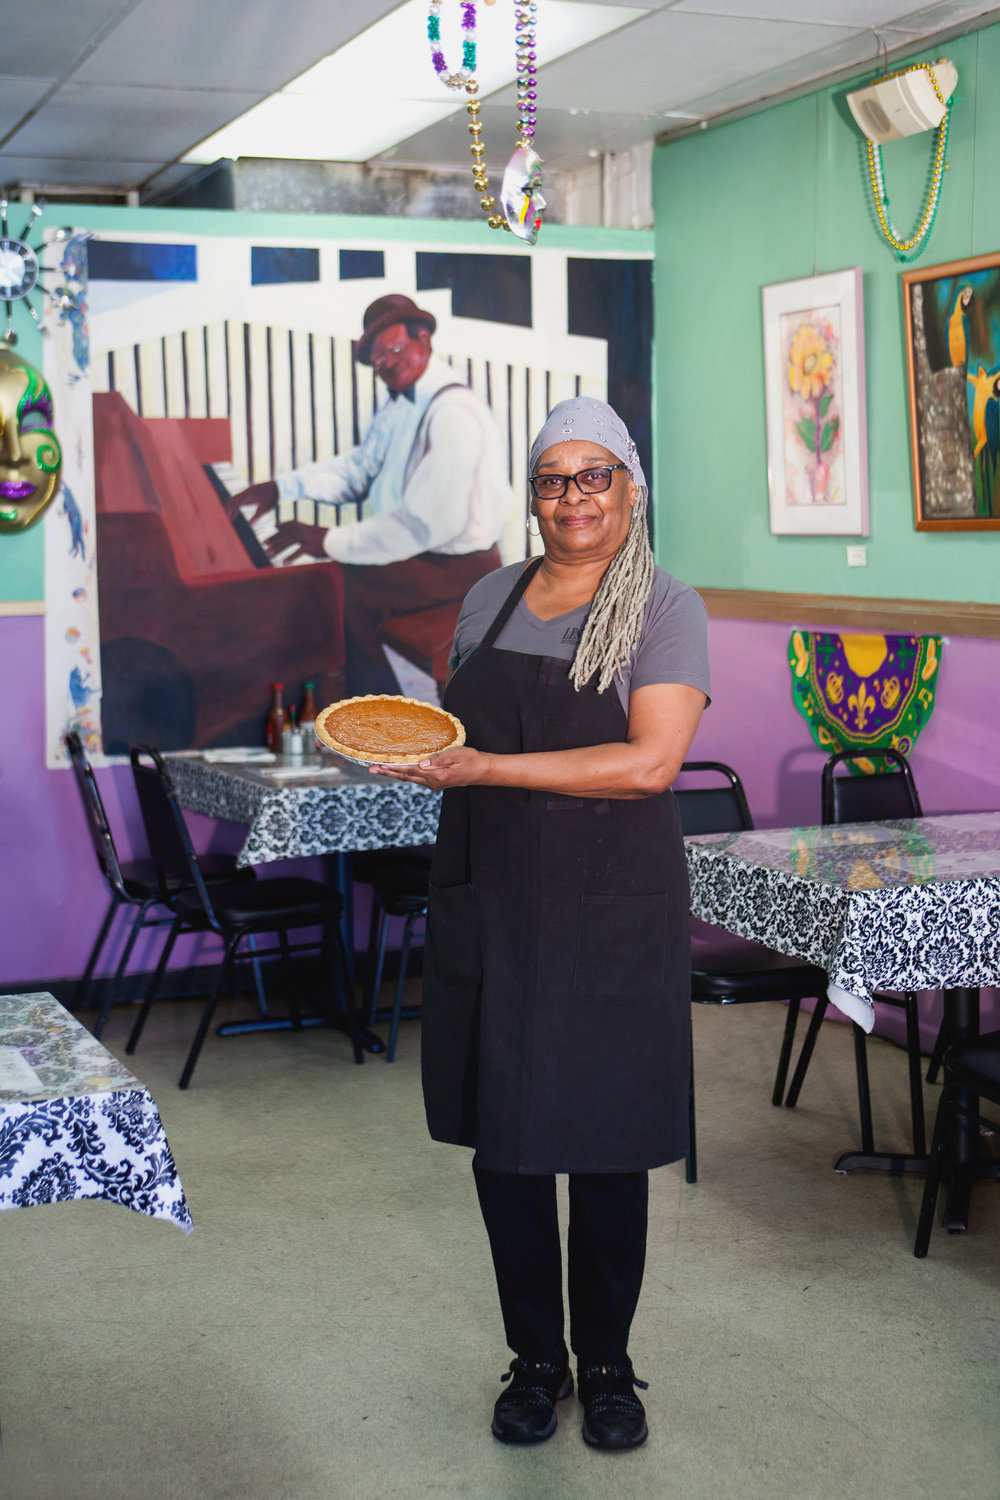 "Pat Fisher - Pat Fisher, 65, has been baking sweet potato pies at Les Sisters Southern Kitchen and BBQ in Chatsworth since 1992. ""I love what I'm doing. Plus I get to meet new people and I get to see lots of regulars. I've created a family here."" She started serving at 15. ""I had my first crack at being a server here in LA at The Nickel Spot, one of the few Black-owned Southern restaurants in the '60s. It was so hard, I never wanted to do it again, but here I am, still serving."""